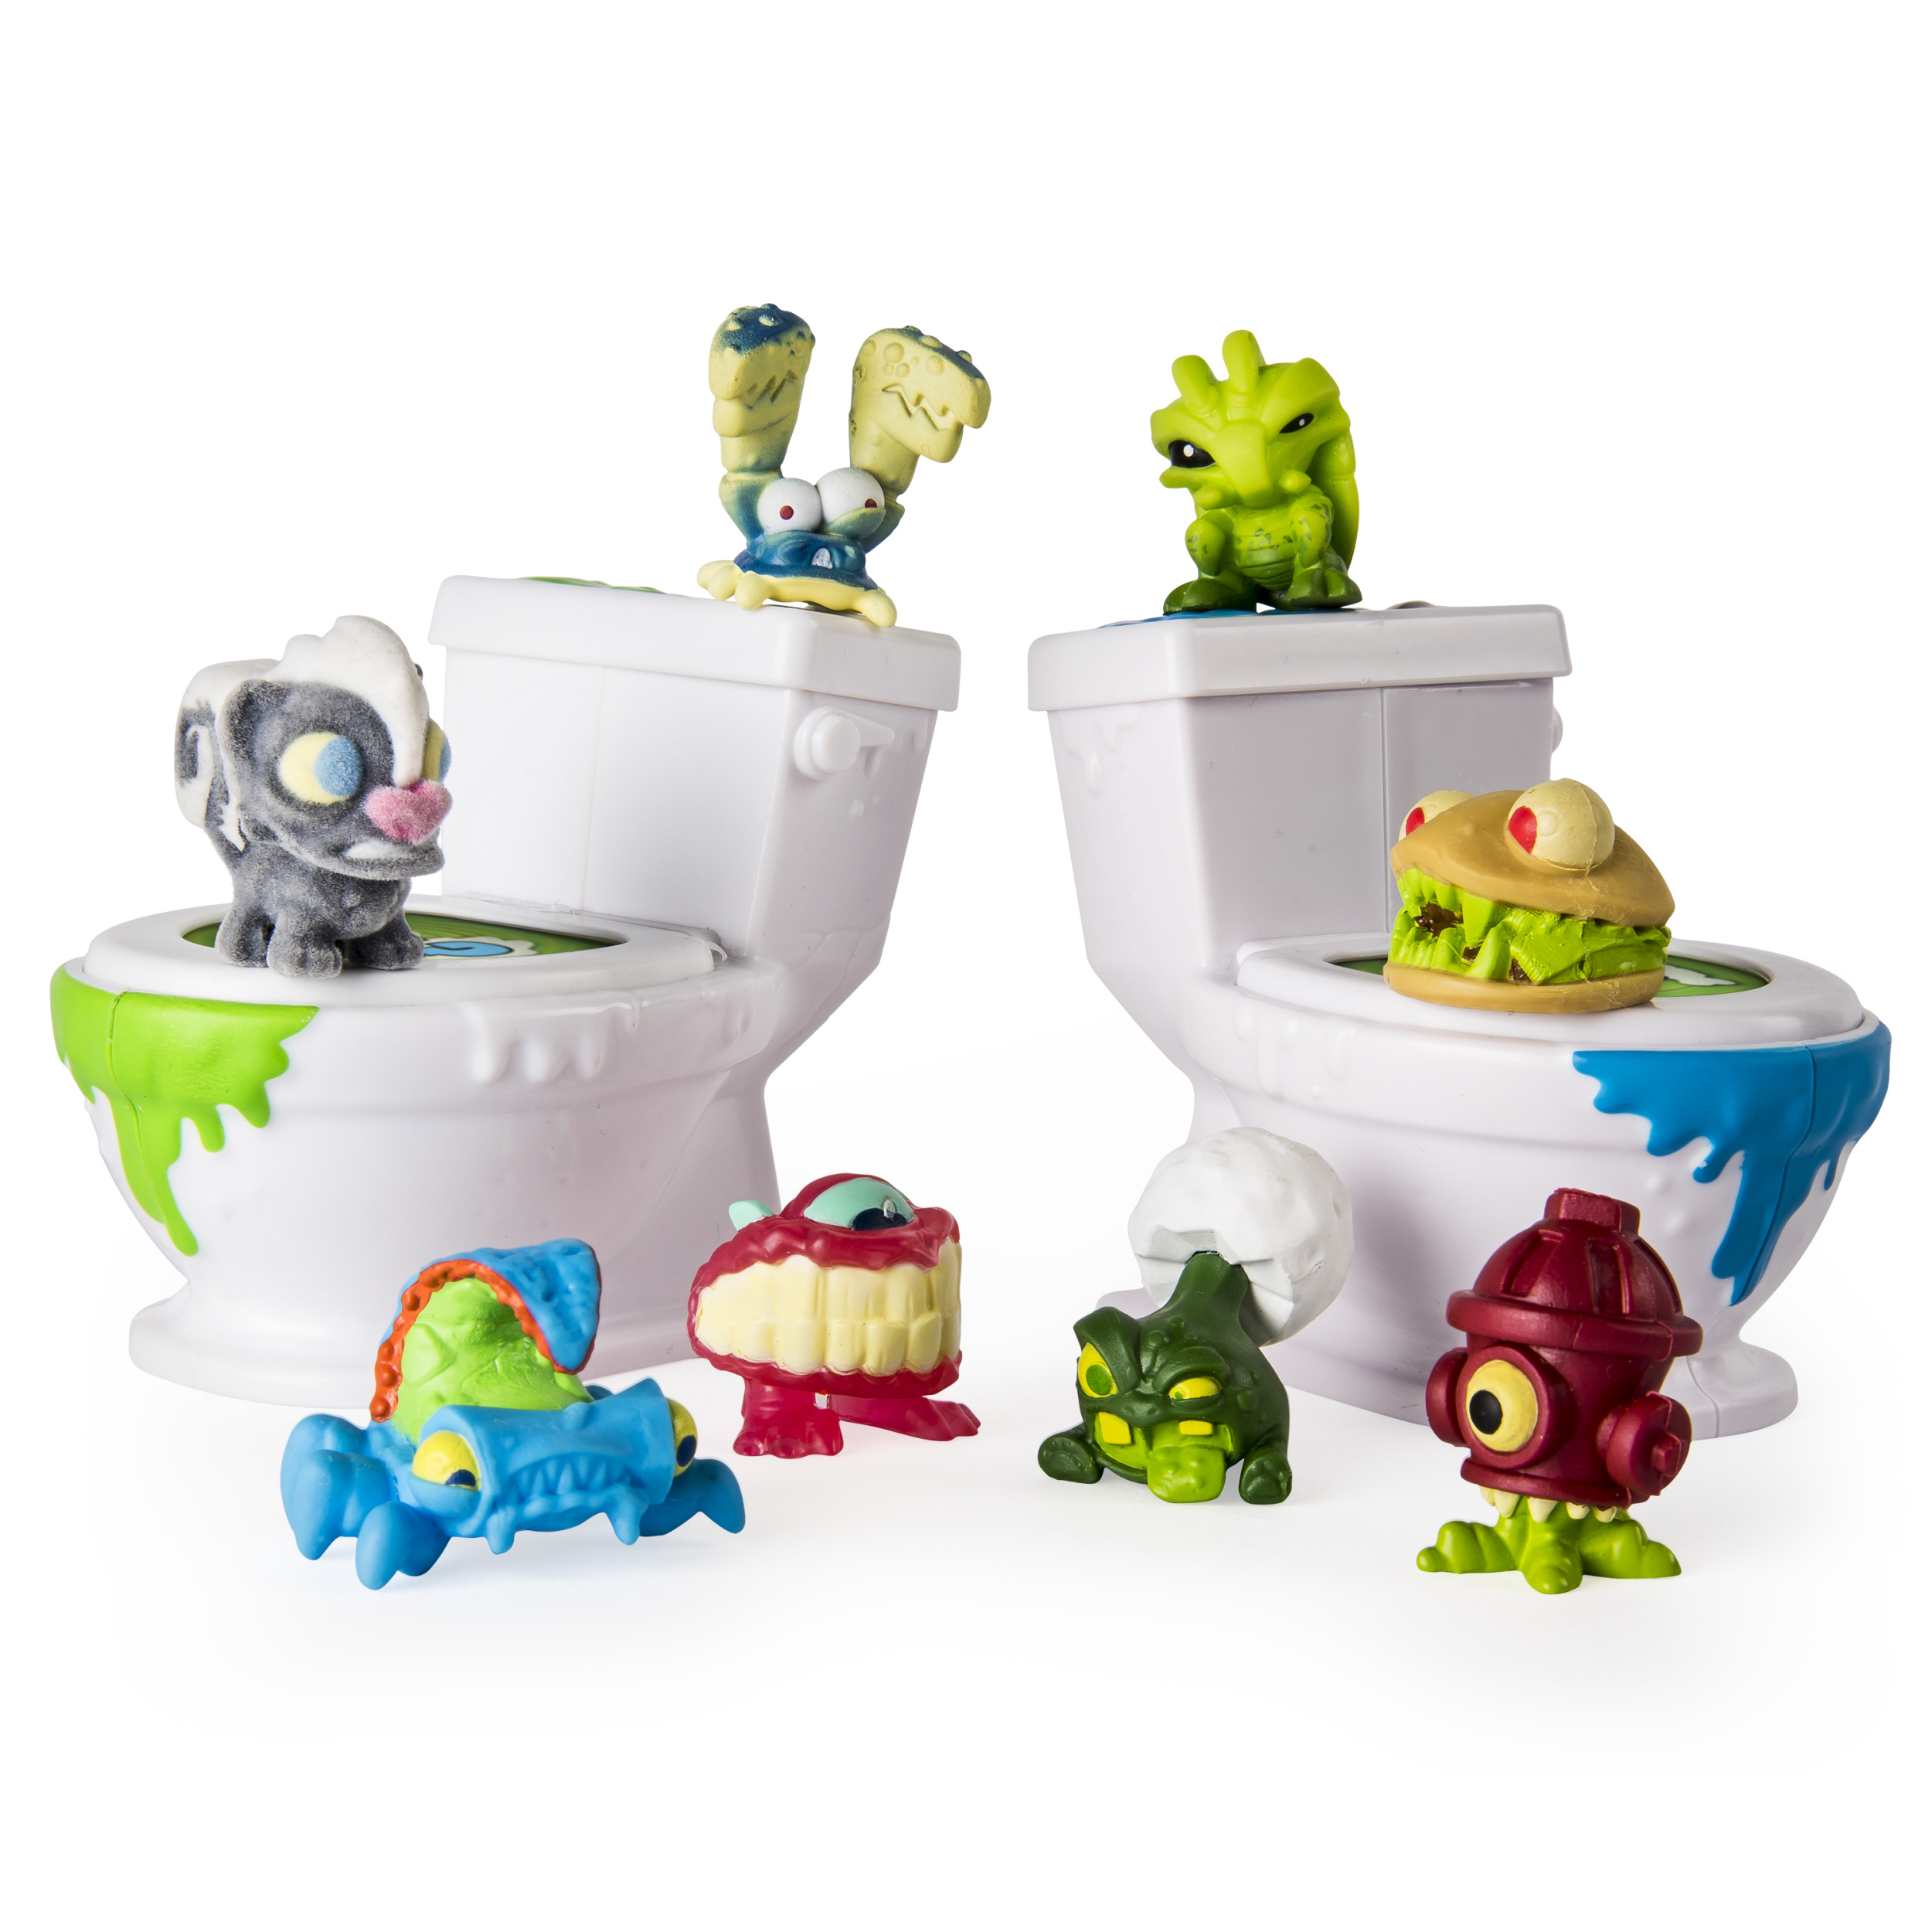 Spin Master Games Flush Force – Series 1 - Bizarre Bathroom Collectible 8-Pack Figures (Color/Styles May Vary) PartNumber: A018027249 KsnValue: 004W002461202001 MfgPartNumber: 6037316